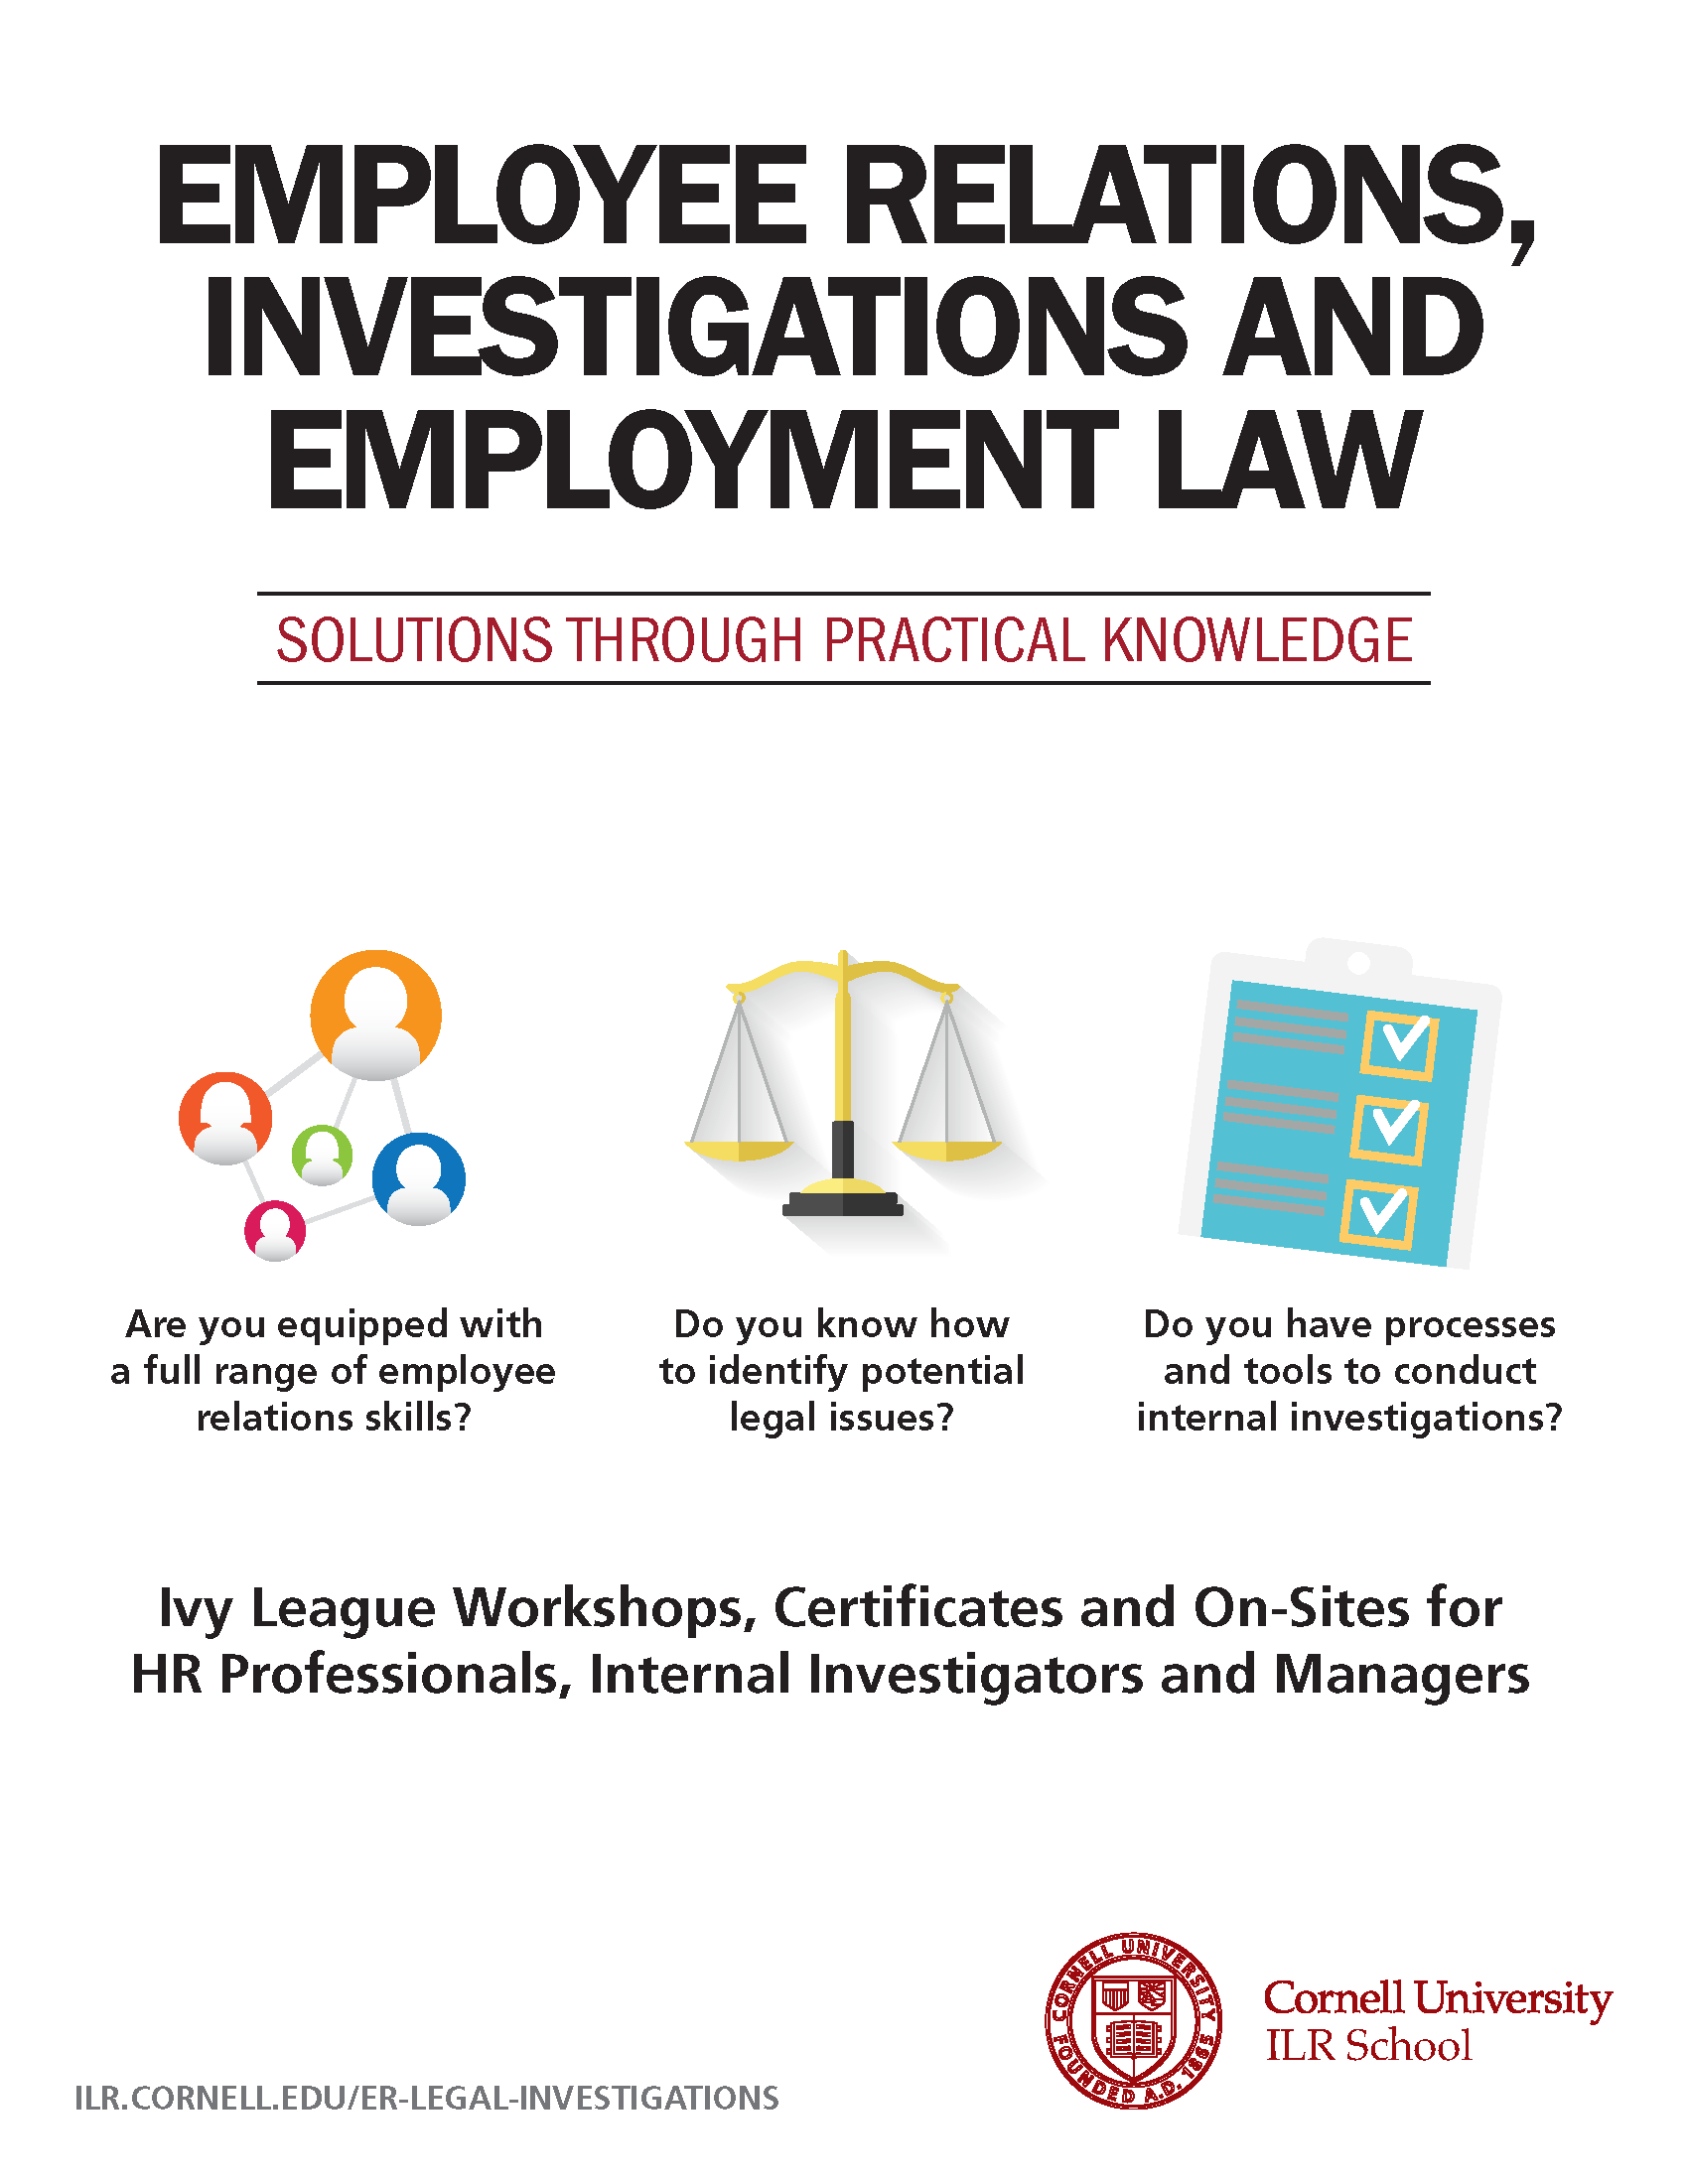 employee relations, internal investigations, employment law, hcd, human capital development, cornell ilr